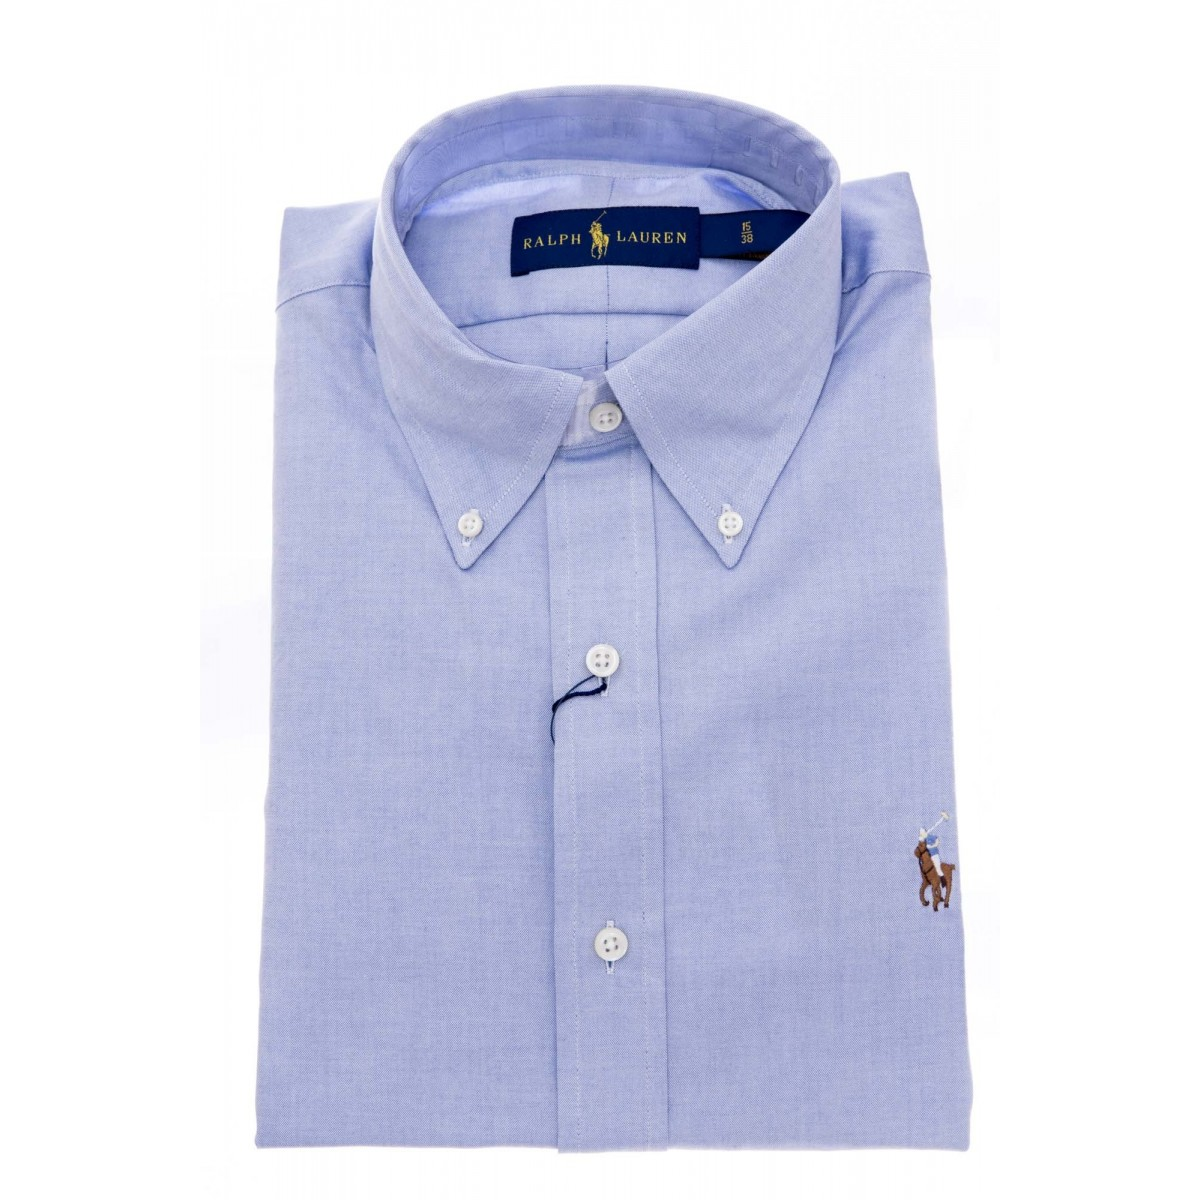 Camicia uomo Ralph lauren - A02w3cbpc0040 pin point